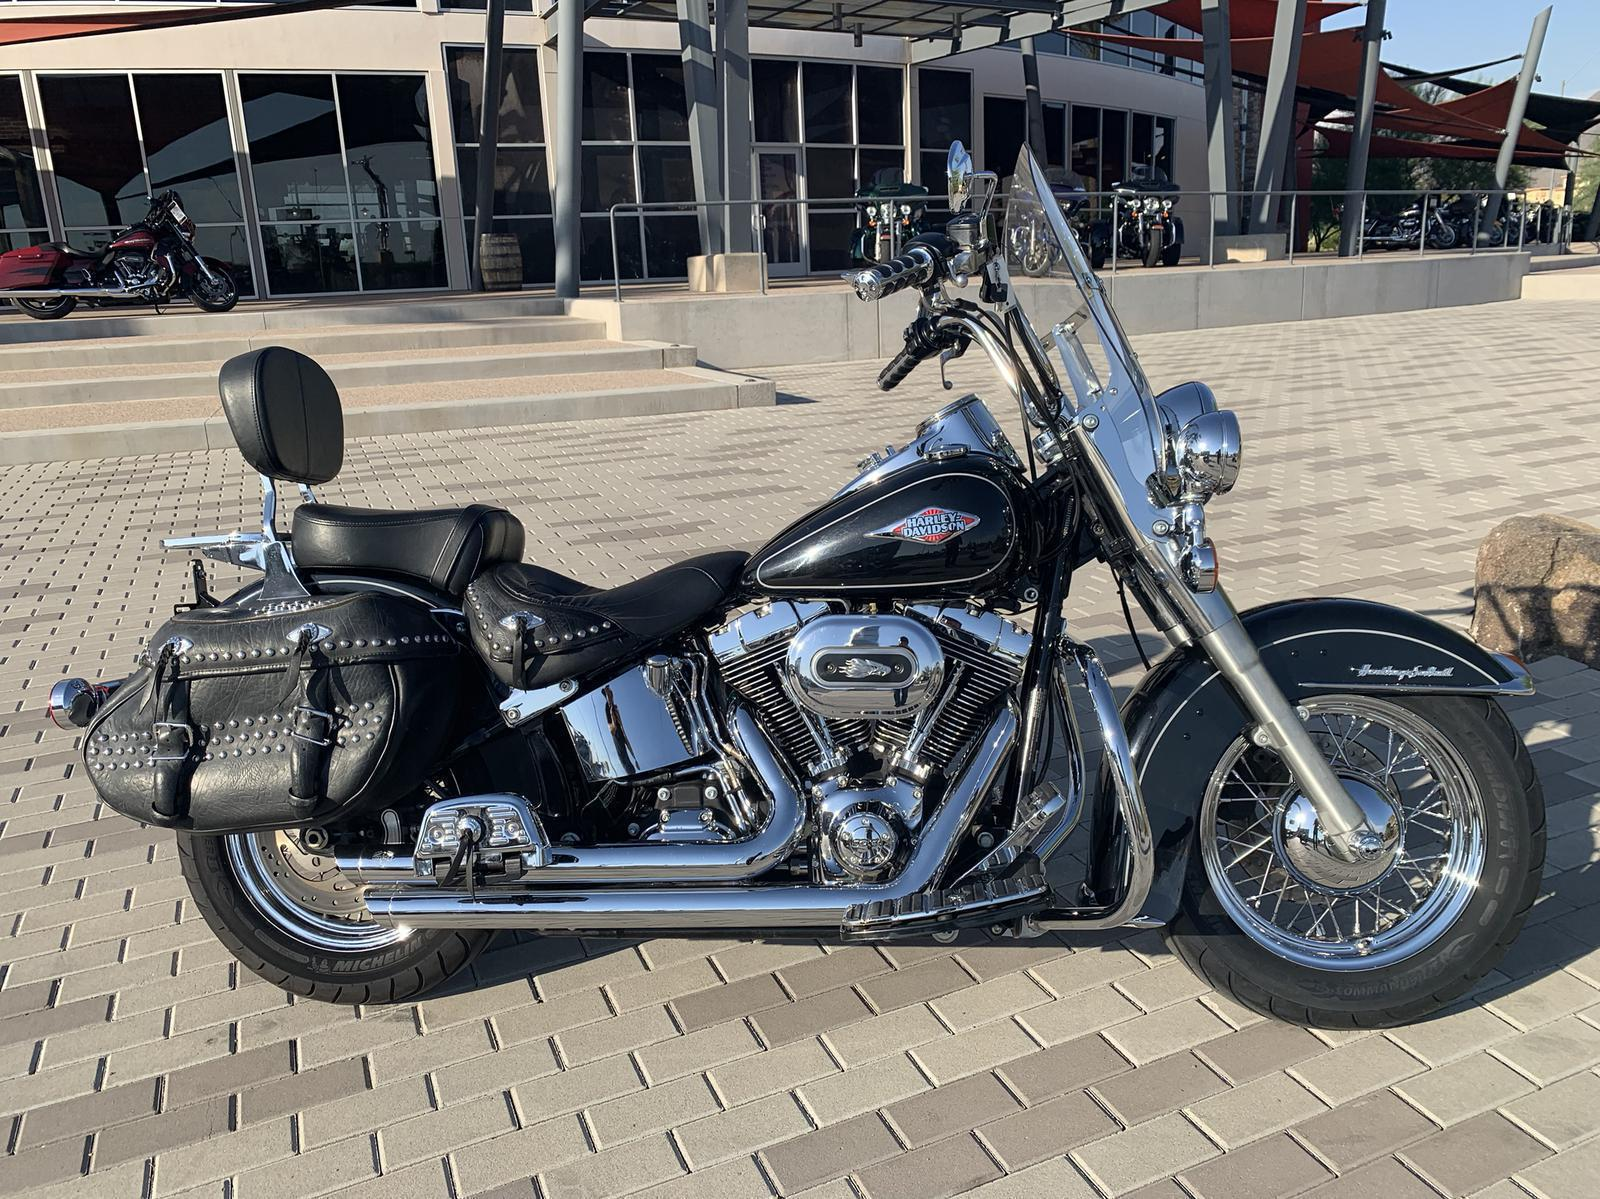 2013 Harley-Davidson® Softail Heritage Softail Classic for